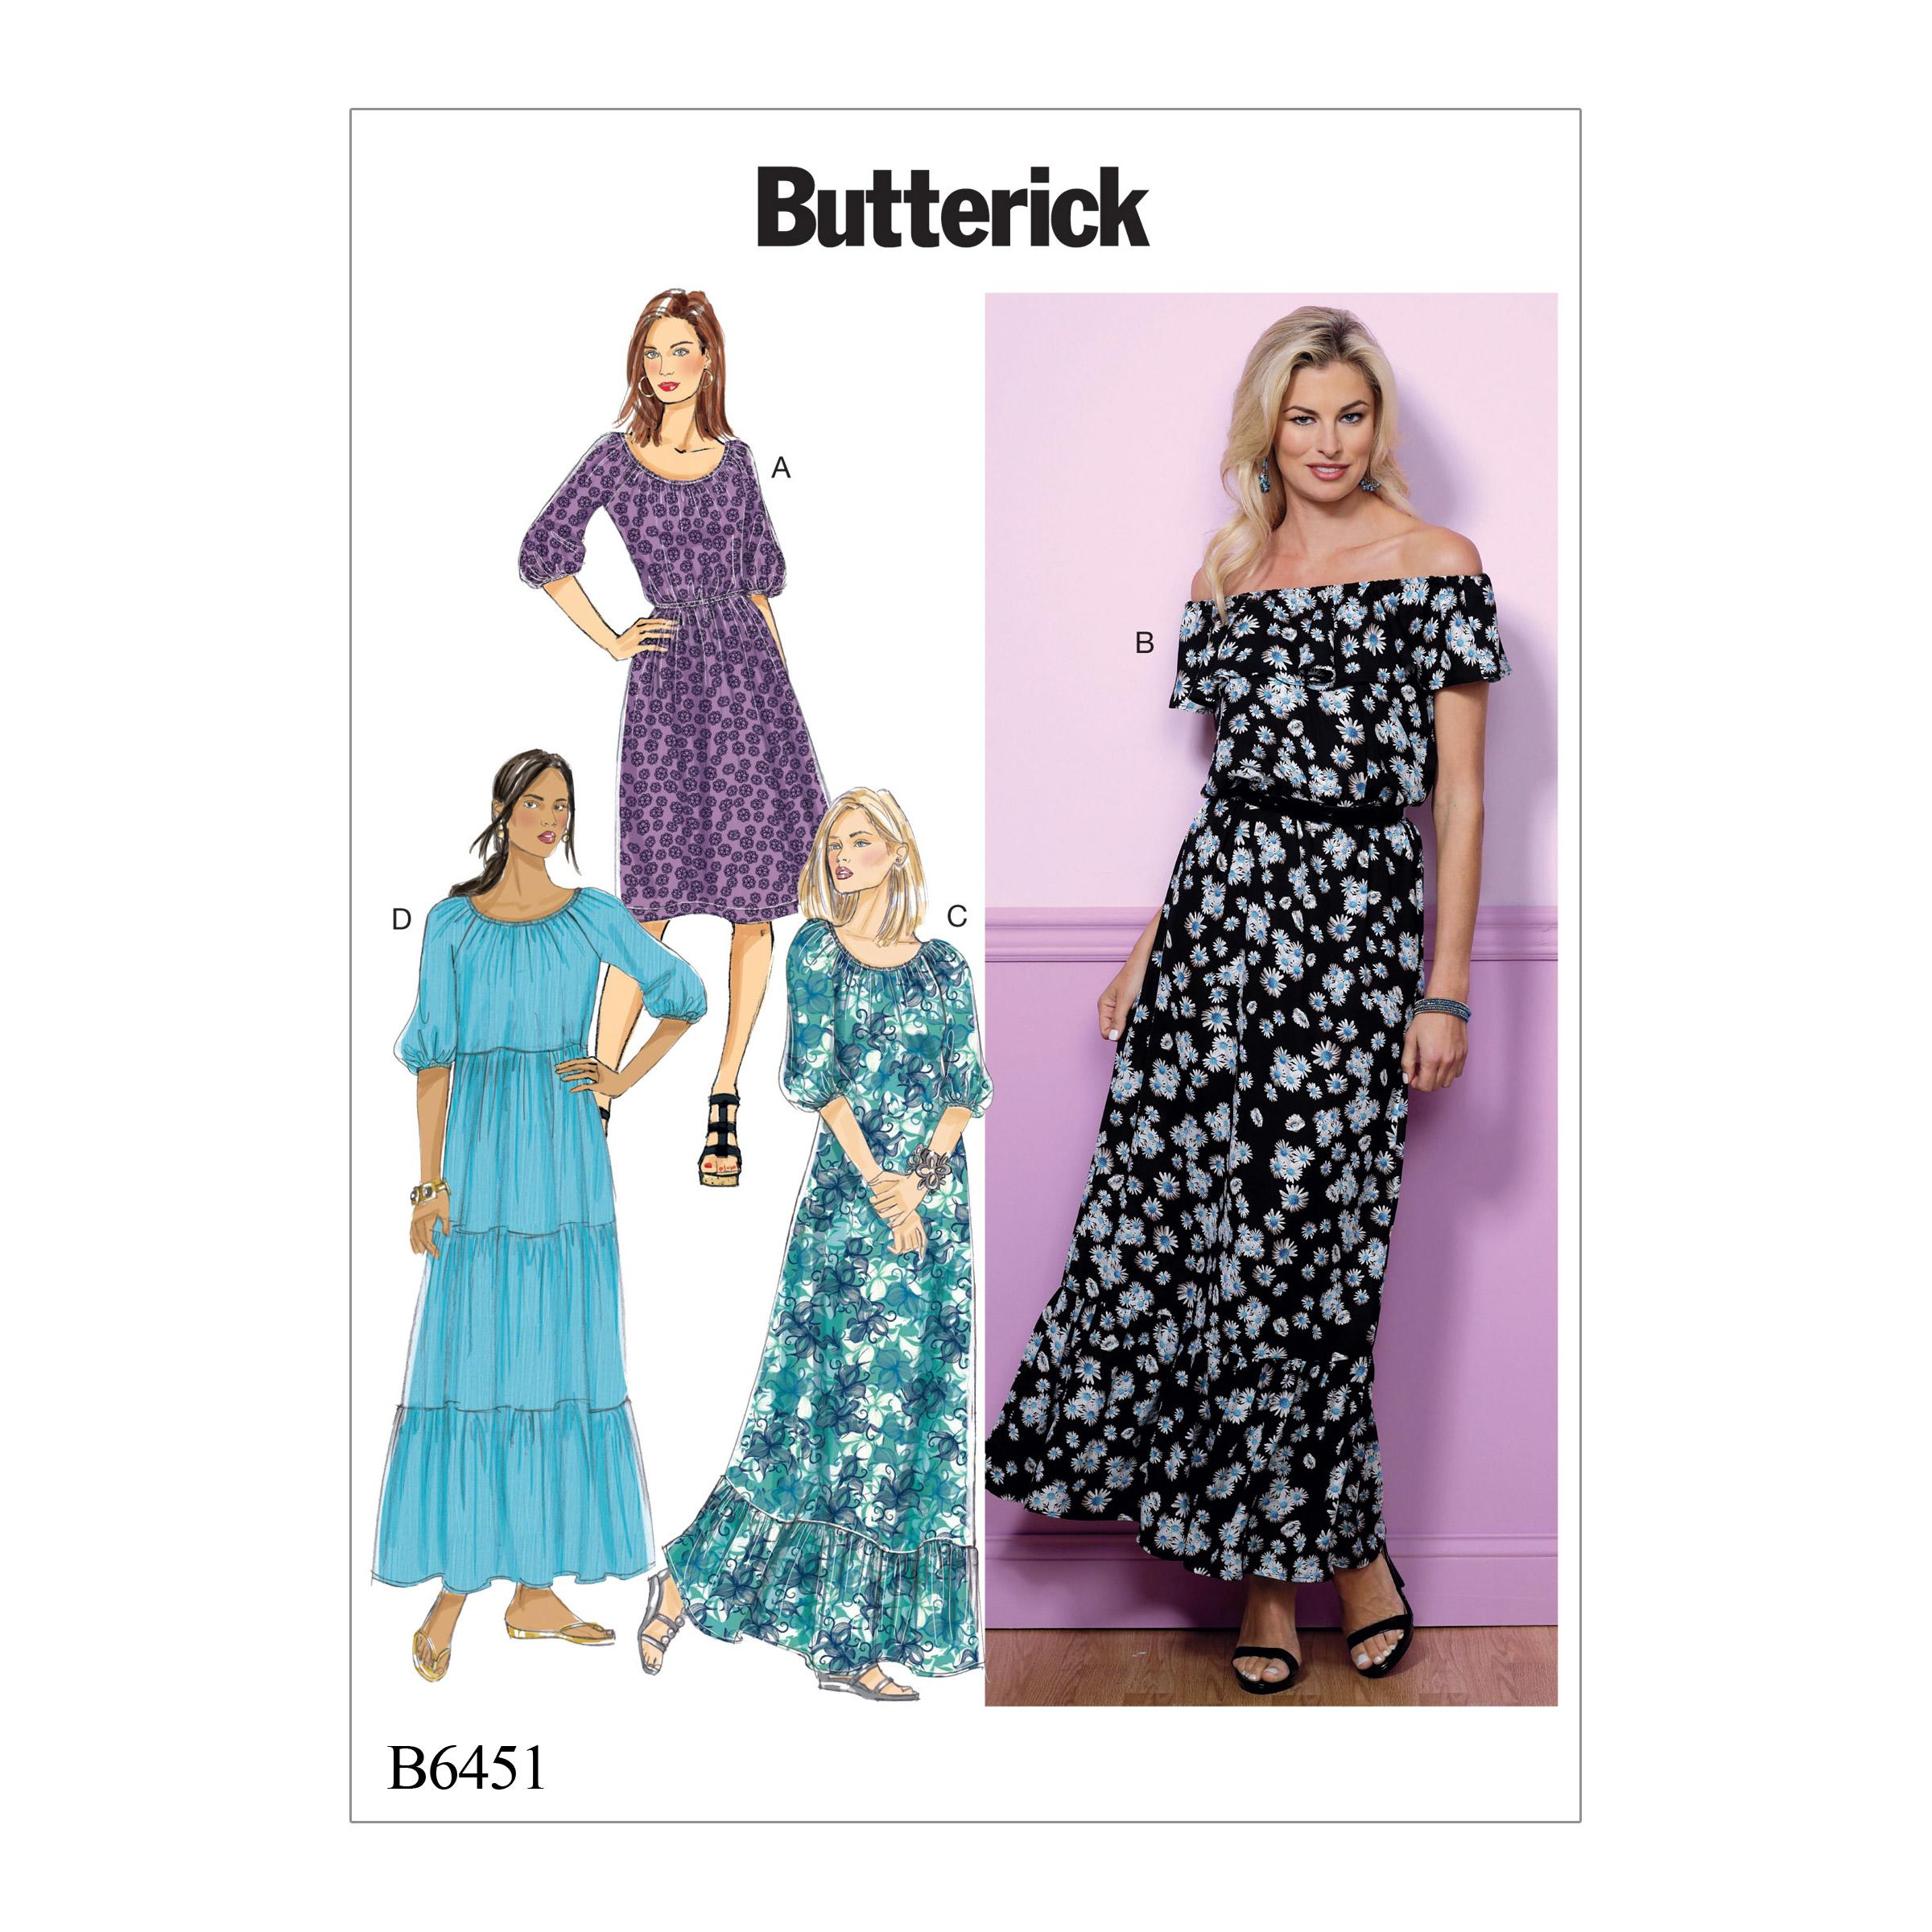 Butterick B6451 Misses' Gathered, Blouson Dresses